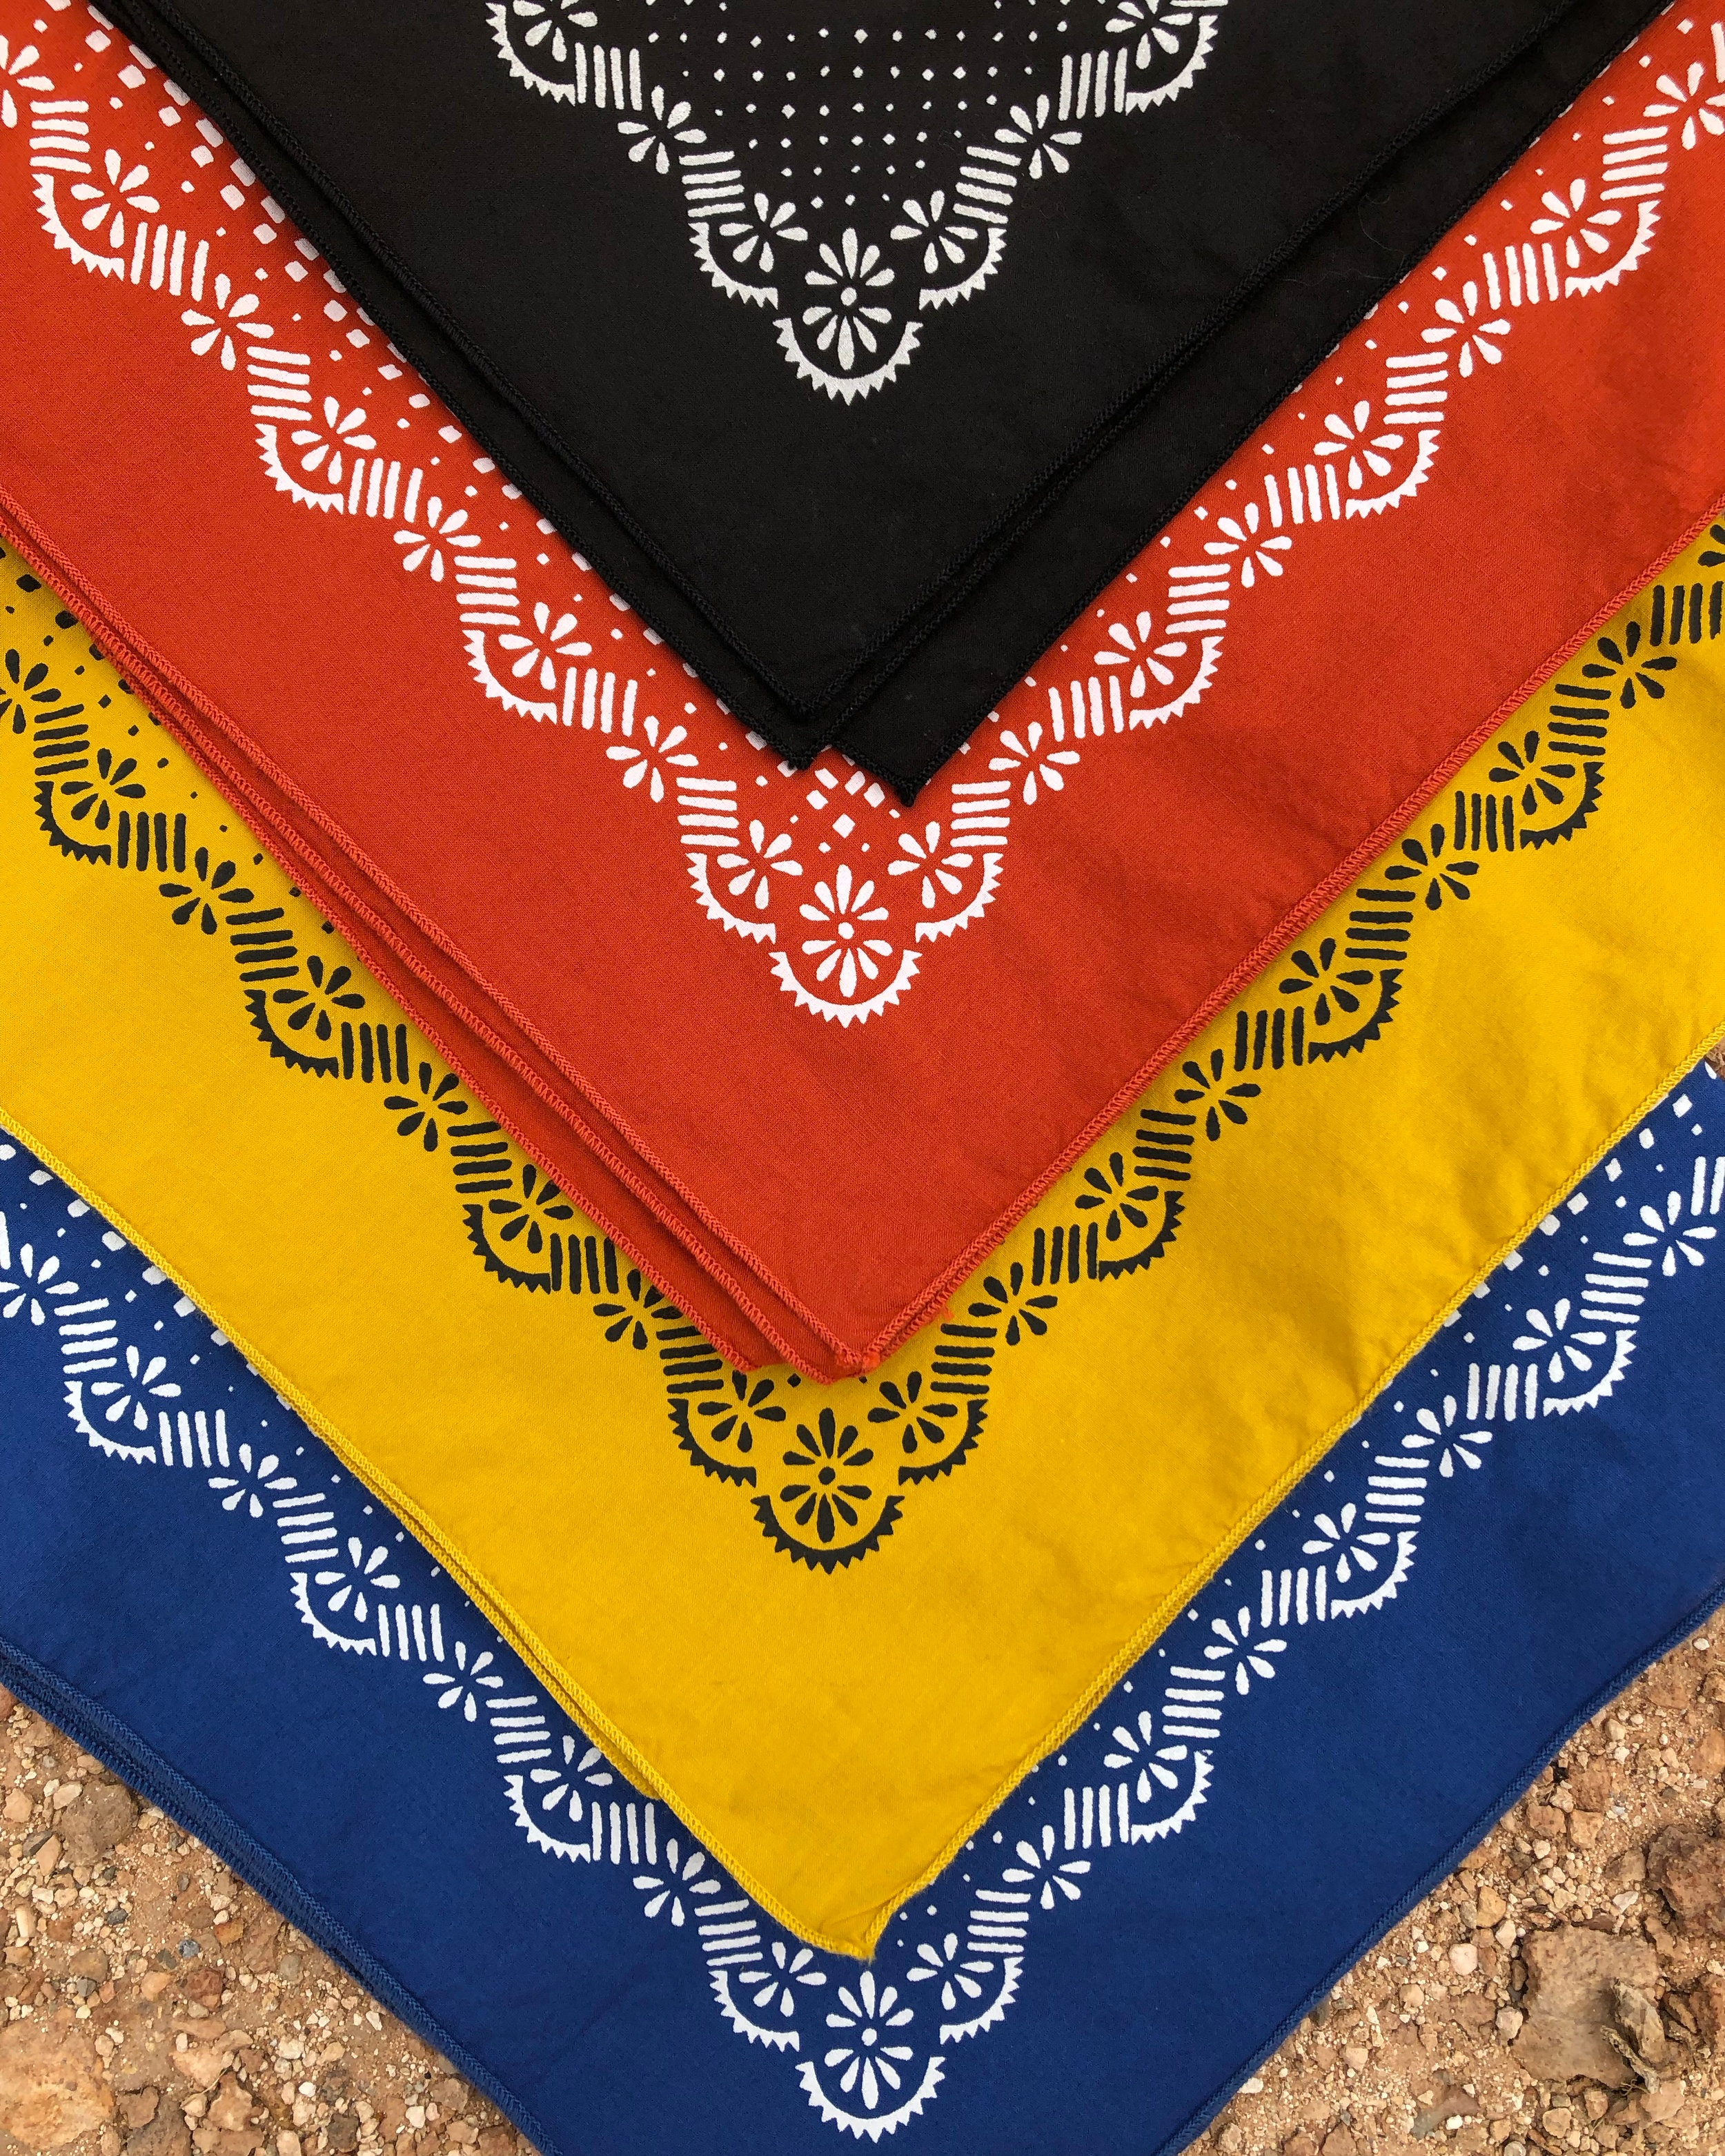 Stock colors: Black, Terracotta, Maize, and Azure